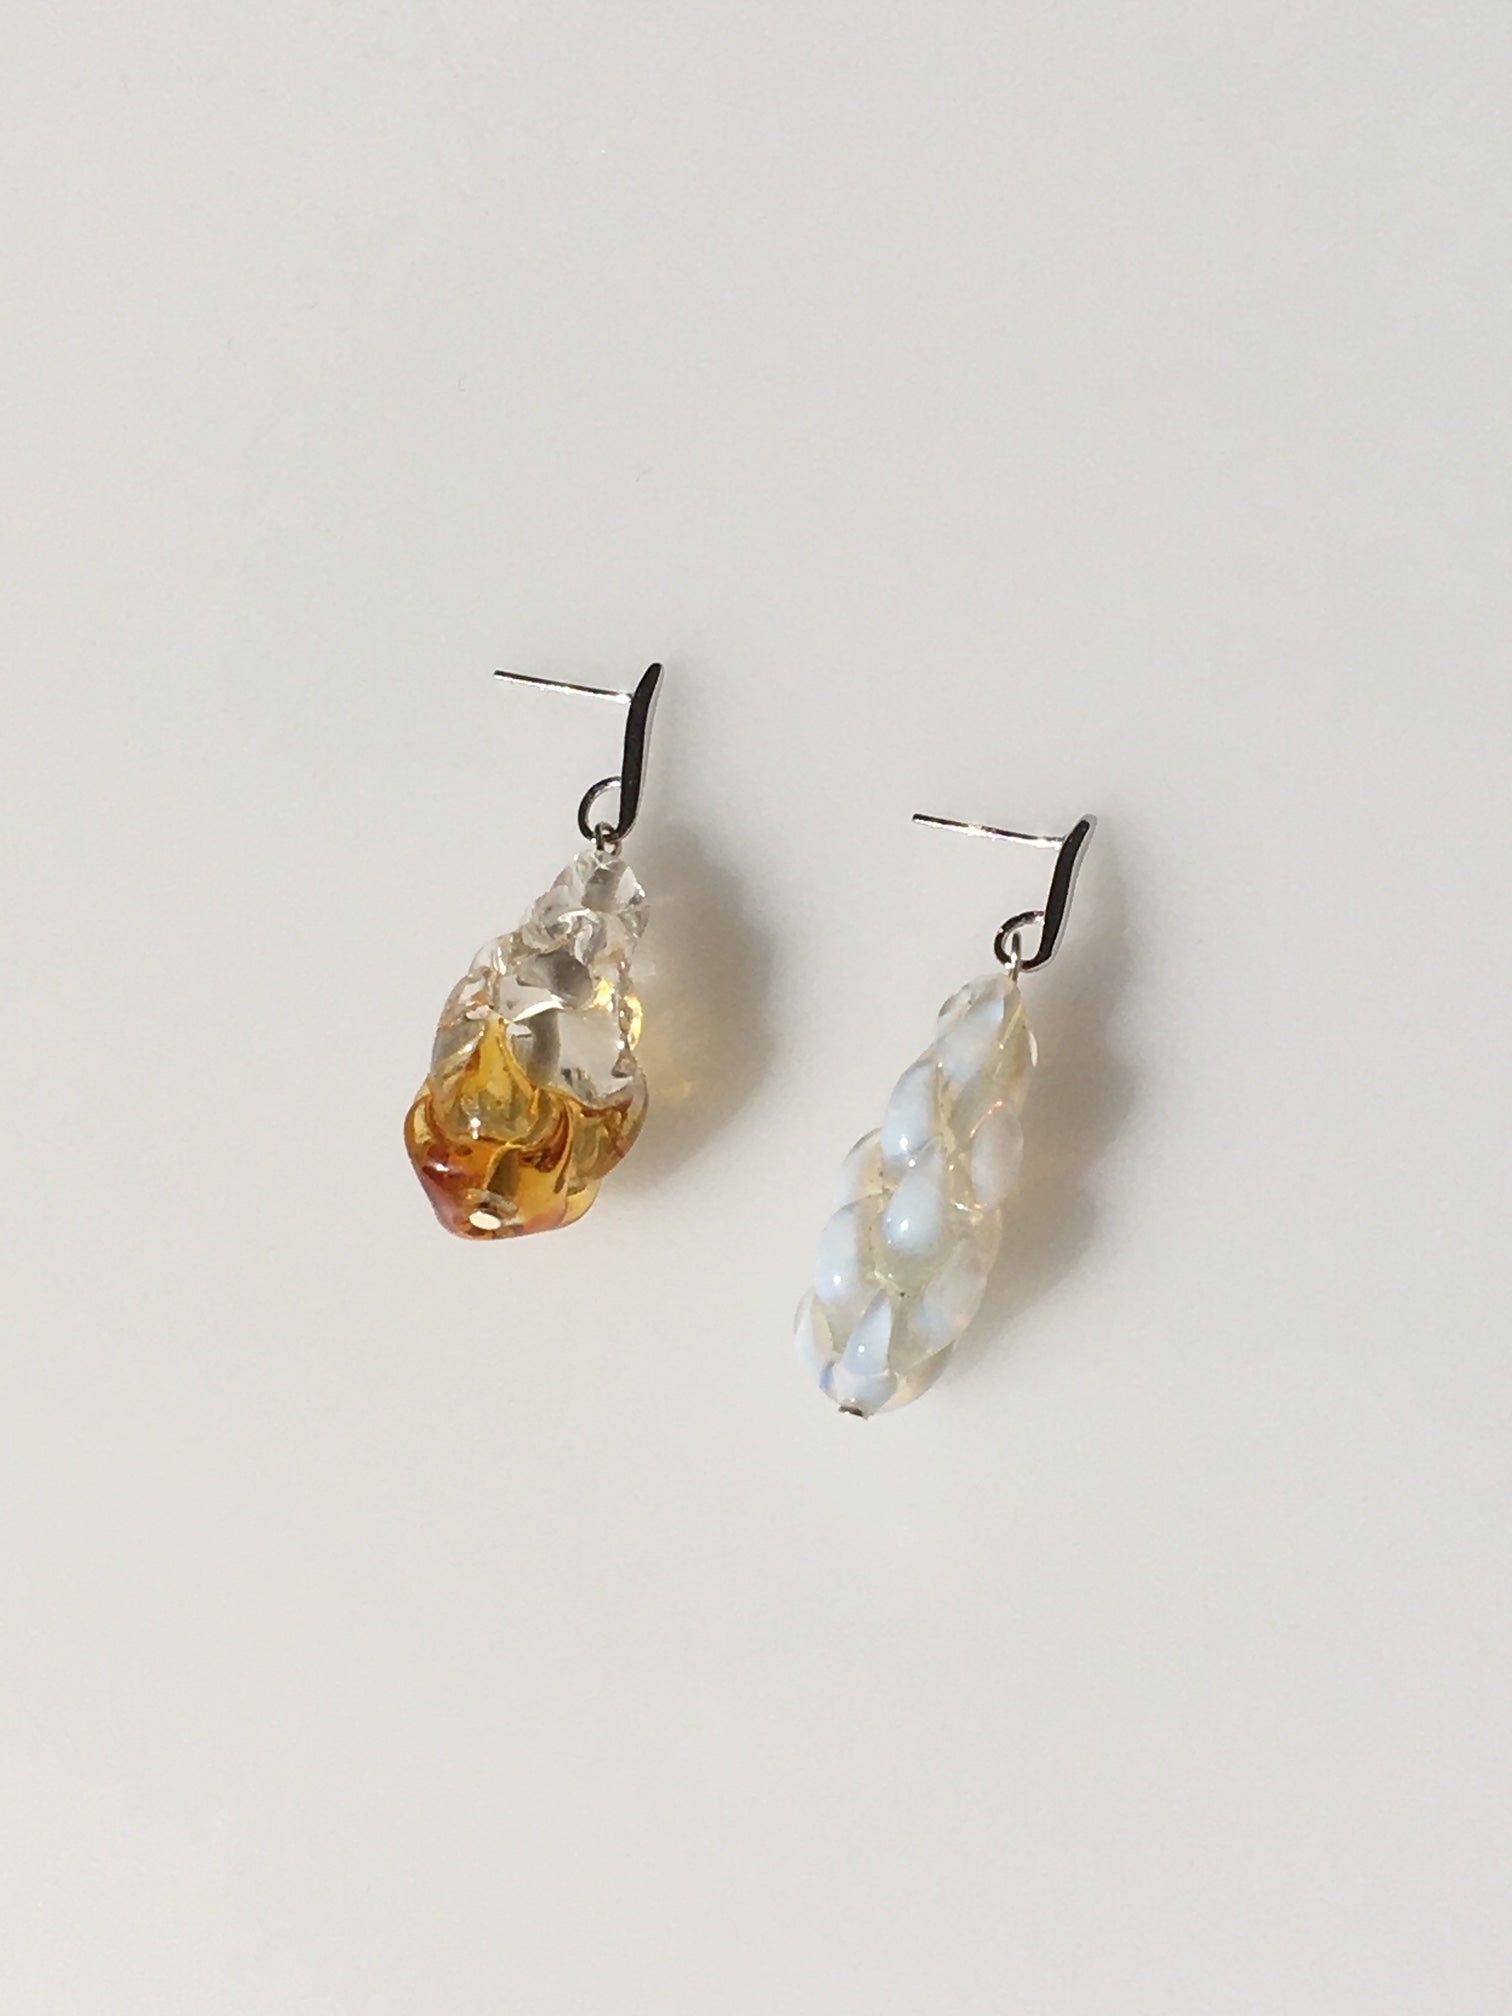 Artichaud earrings - Mismatched